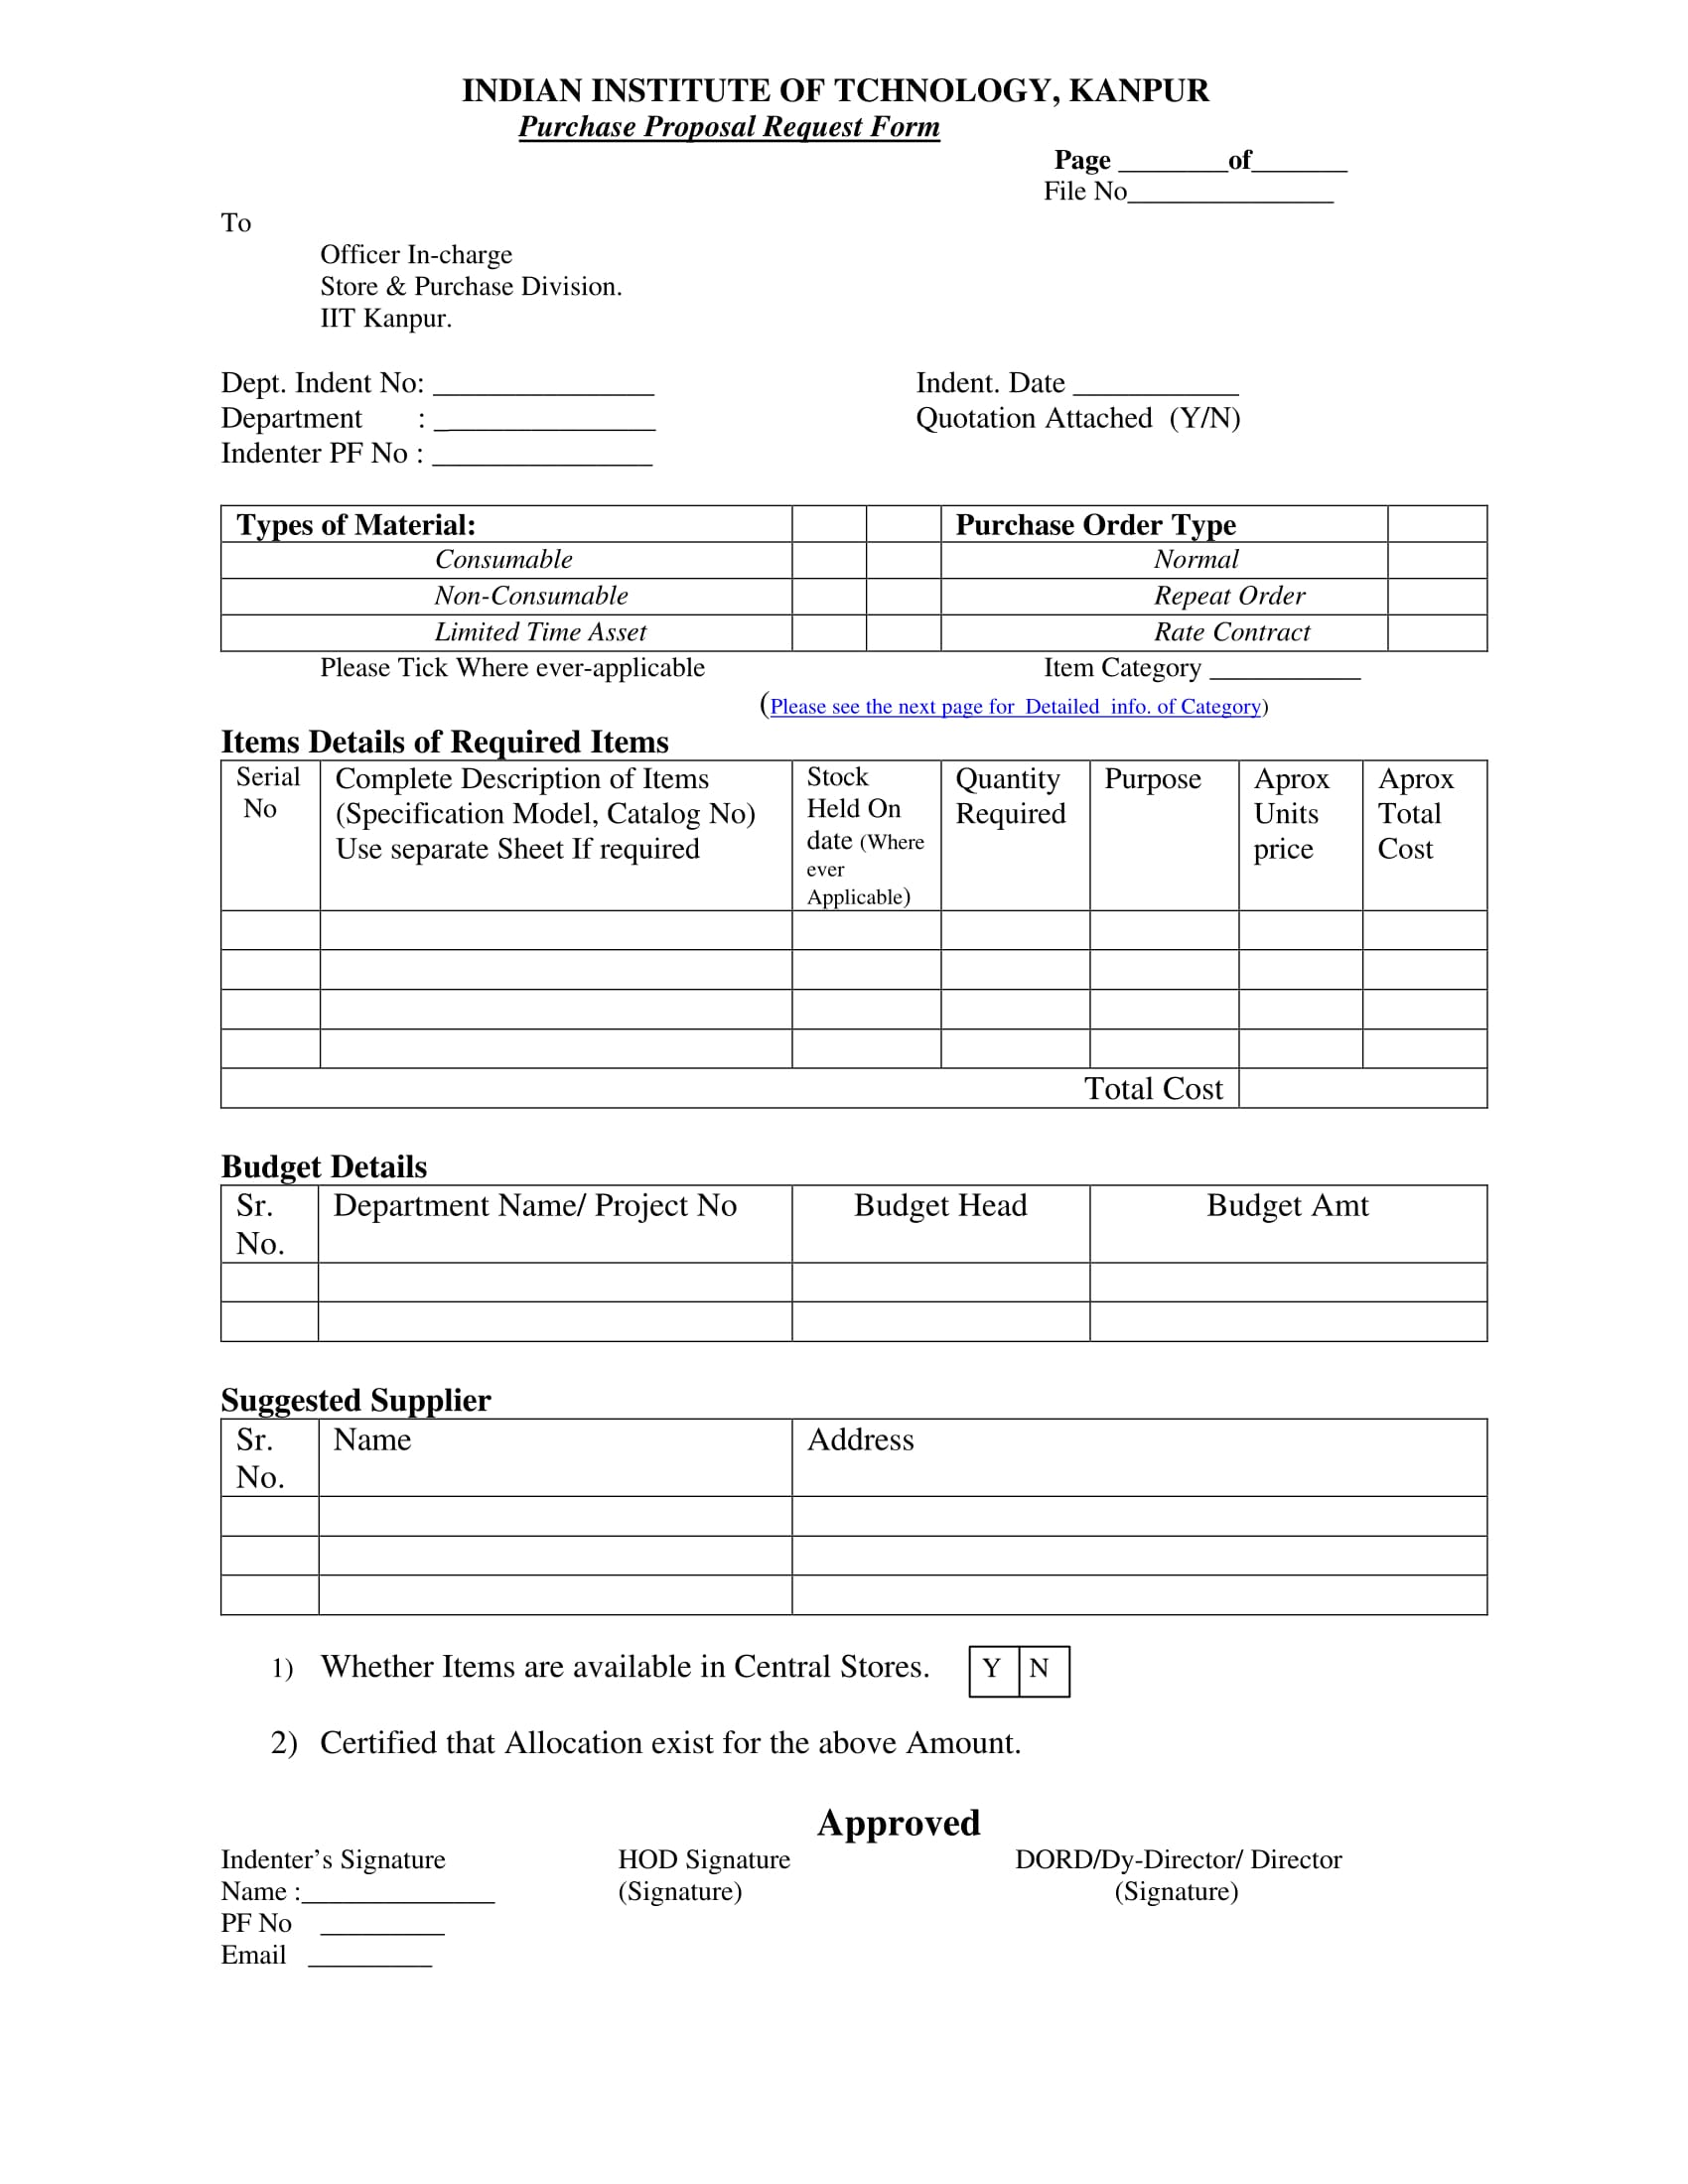 purchase proposal request form 1